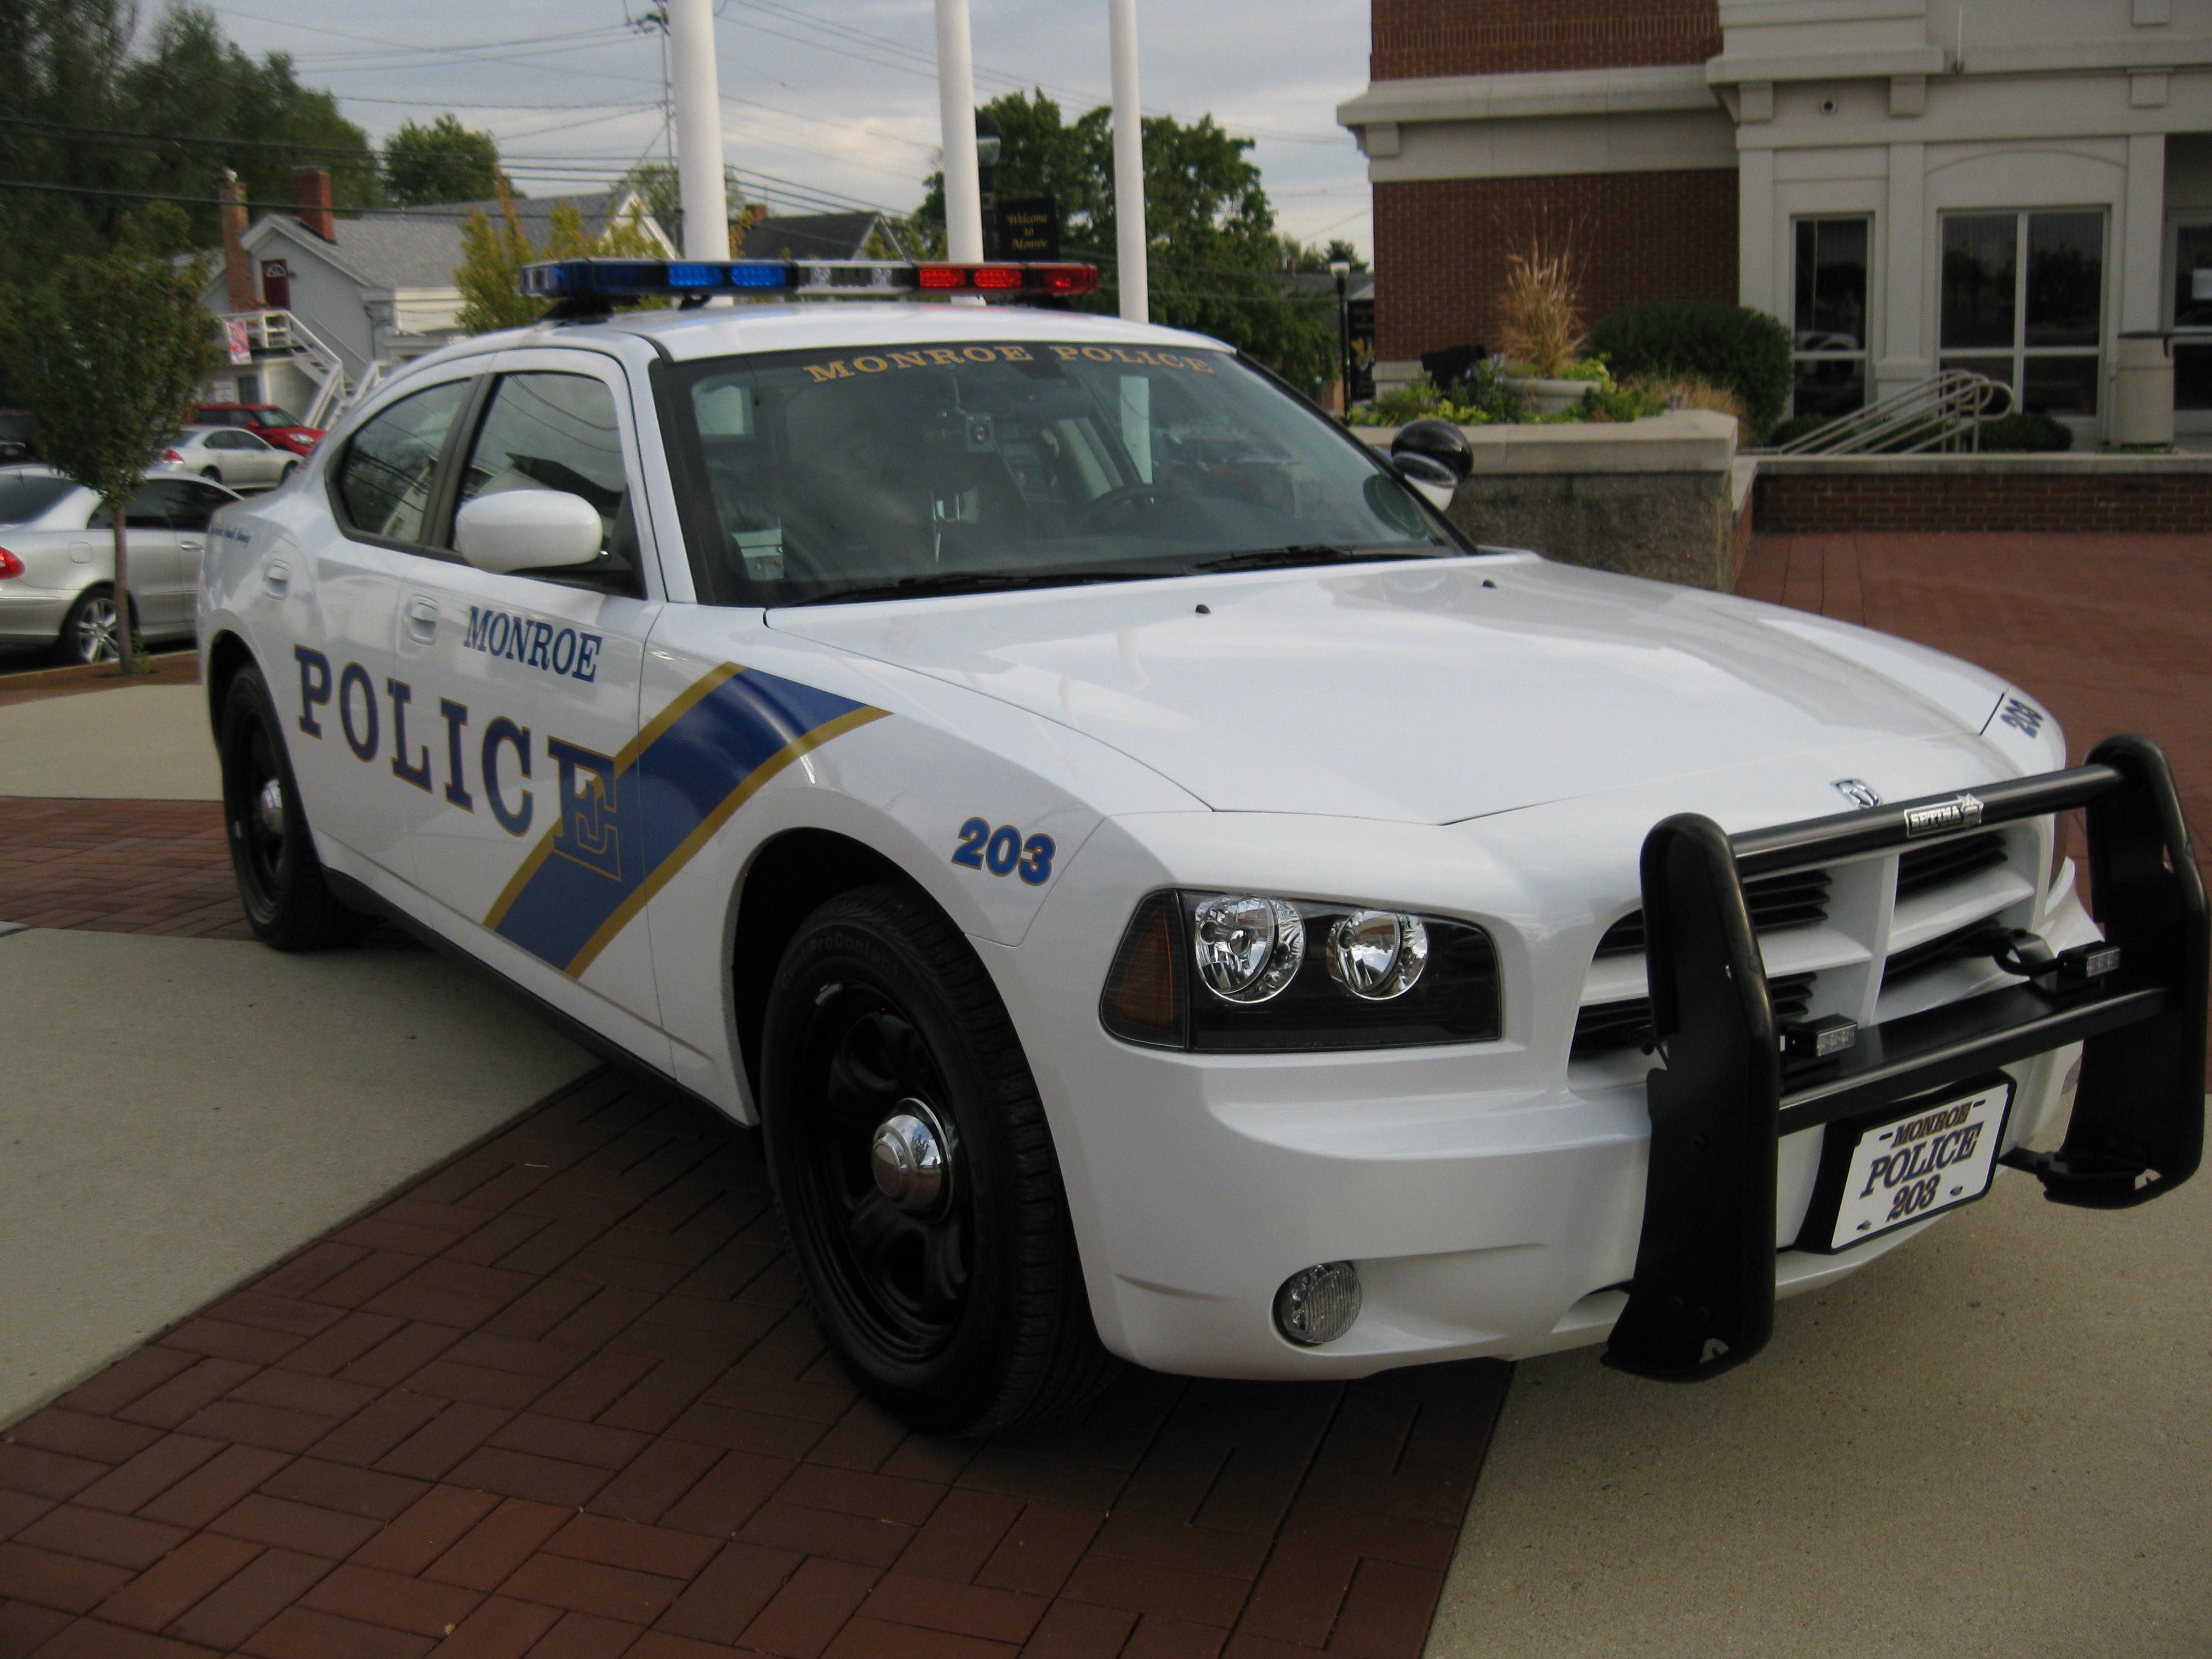 Two New 2011 Dodge Charger Police Cruisers